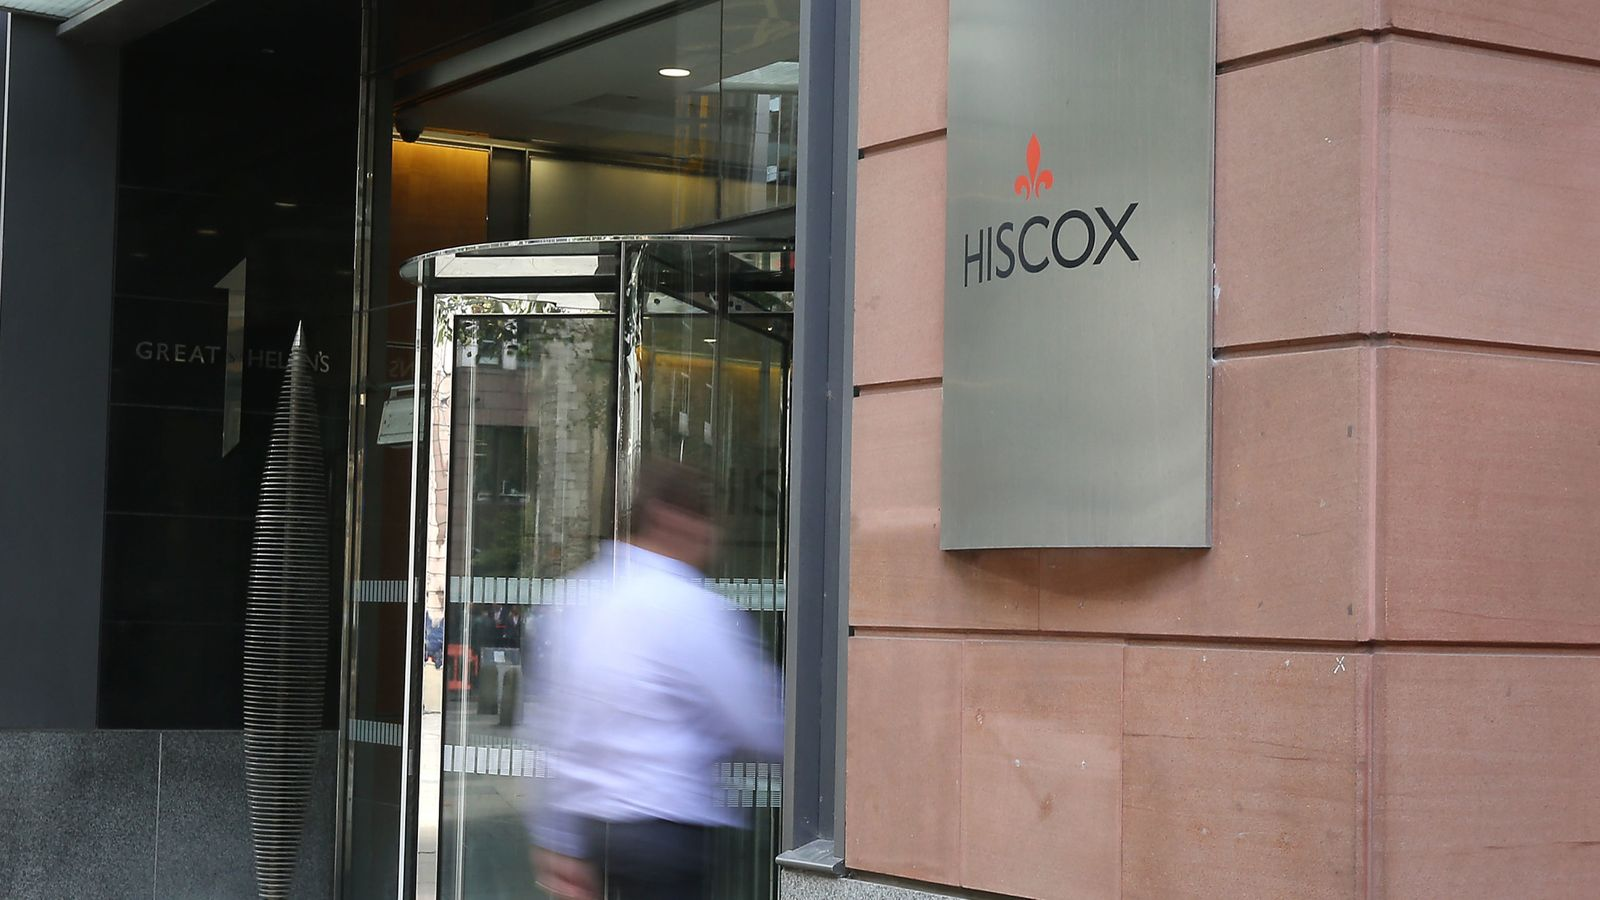 COVID-19: Hiscox insurer admits his trademark has been damaged by court disputes over lock request |  Business news